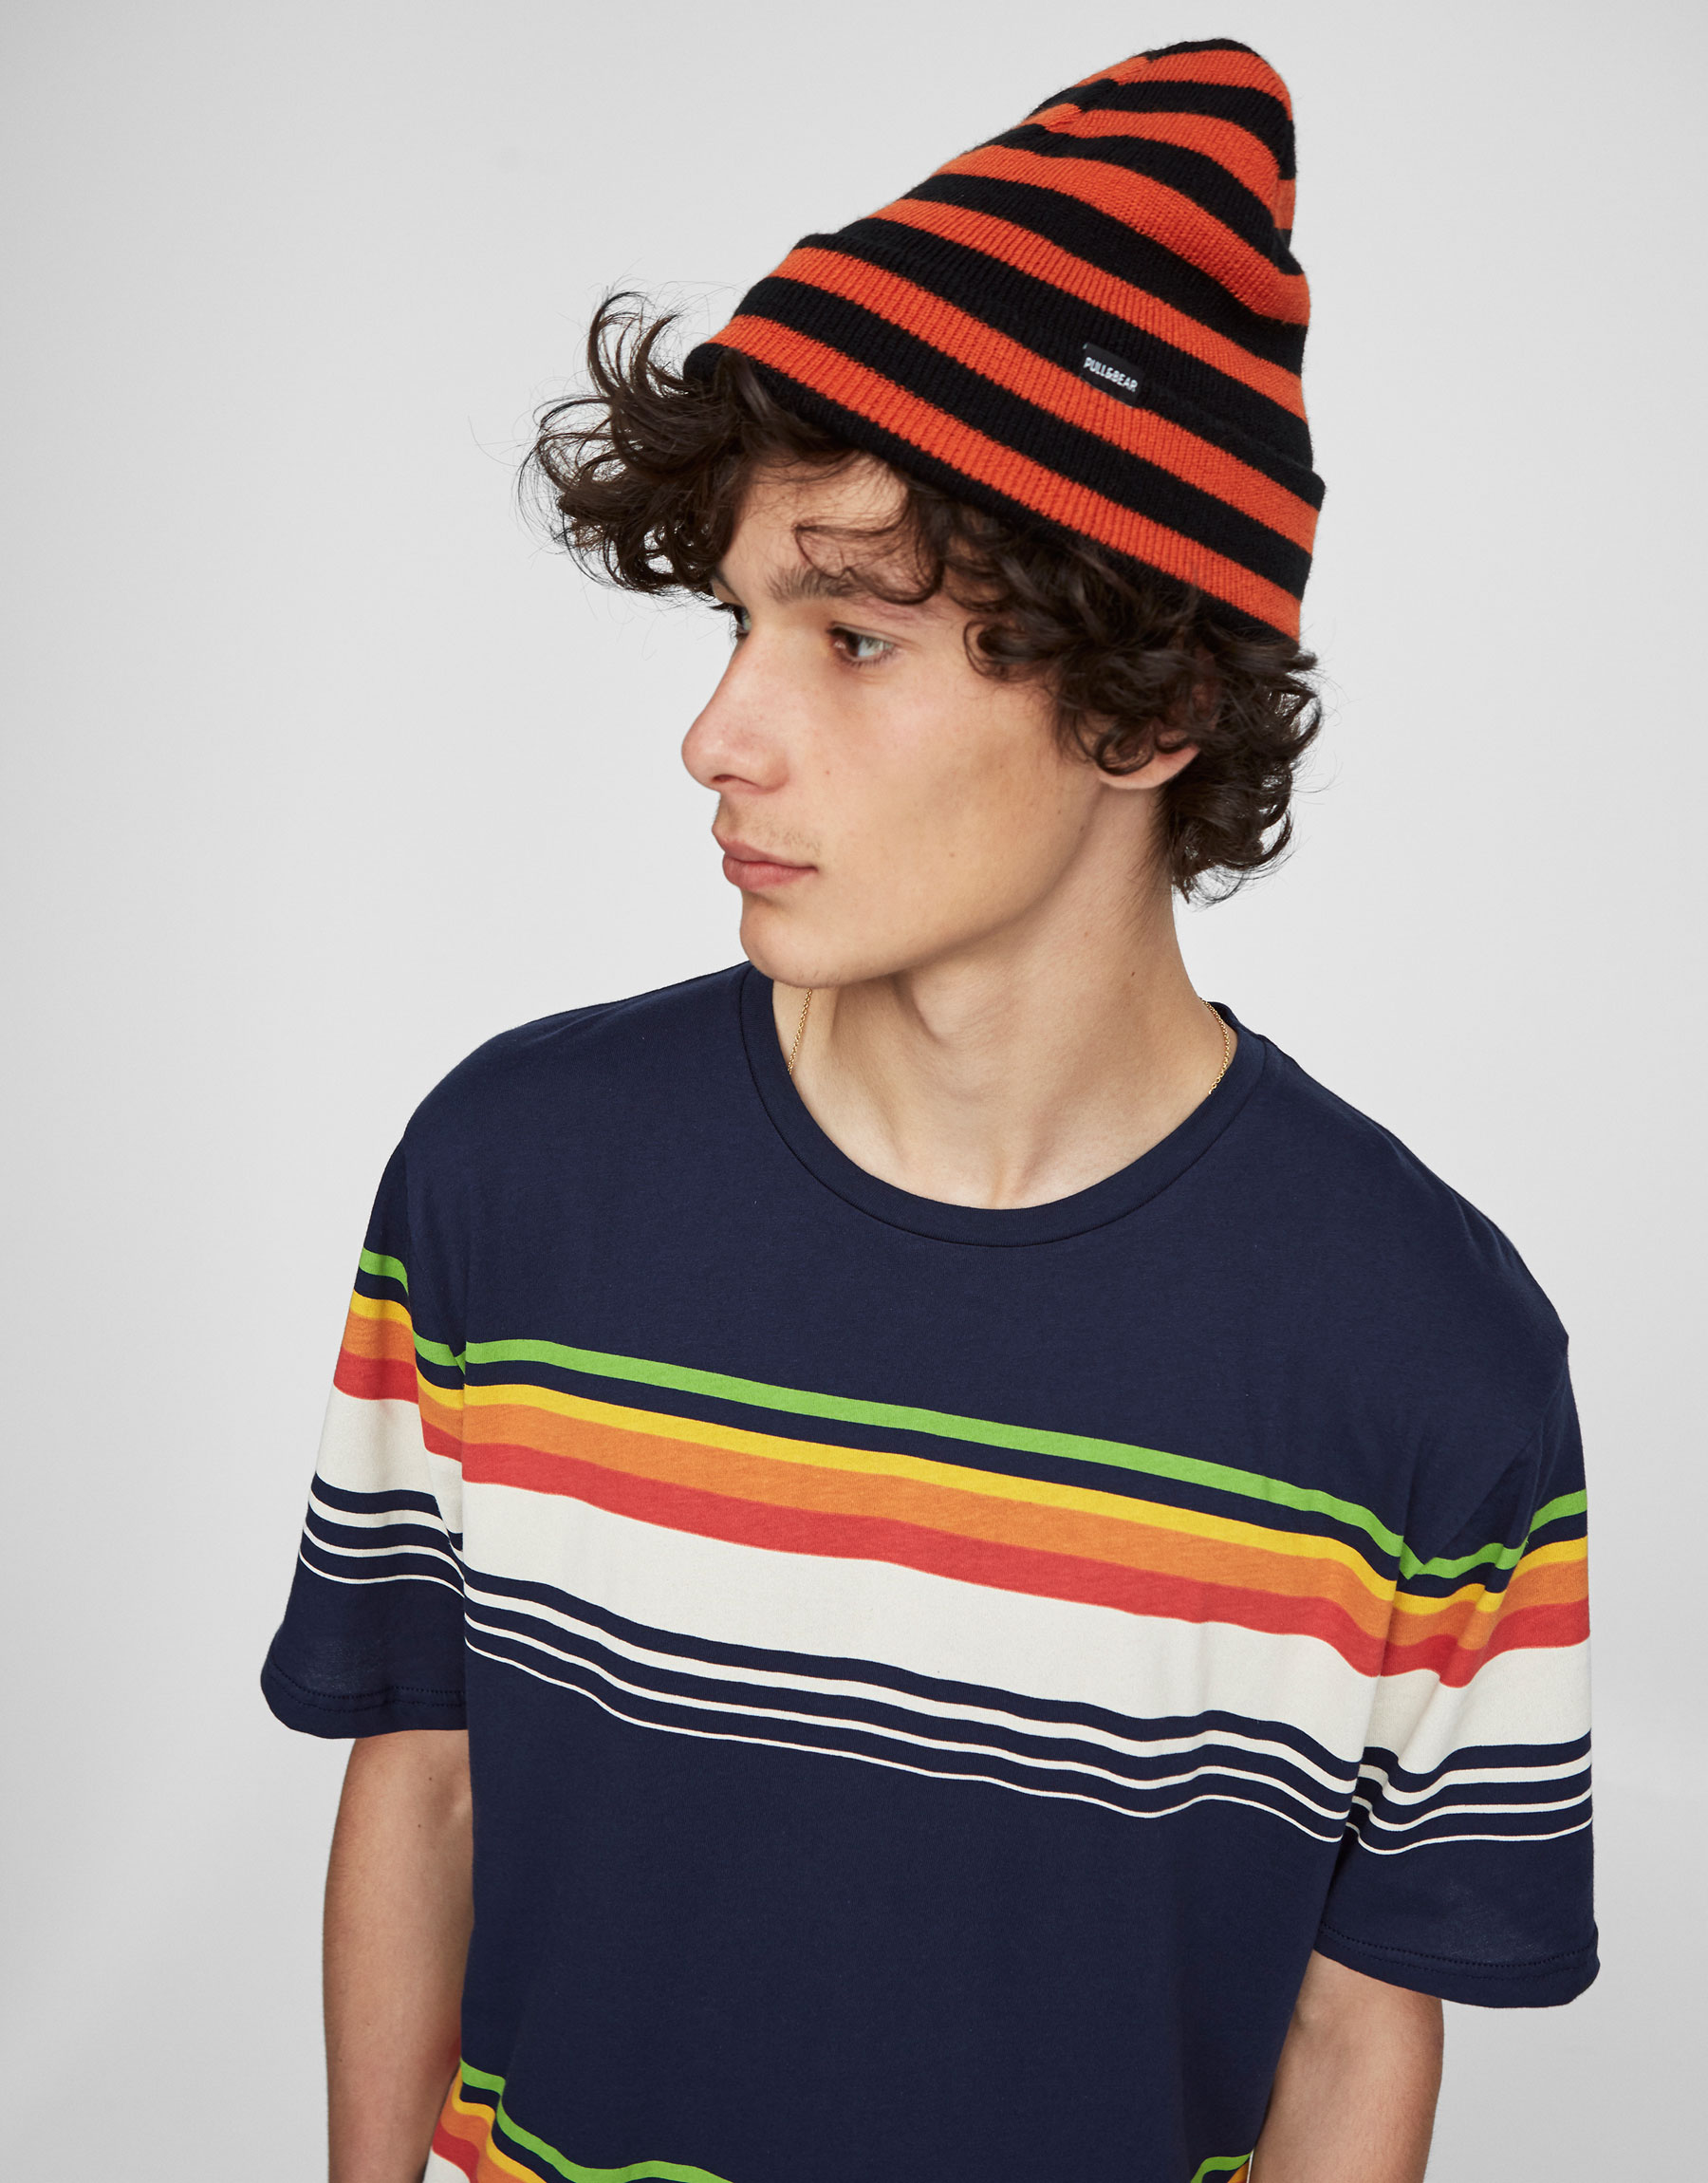 T-shirt with coloured stripes on the front